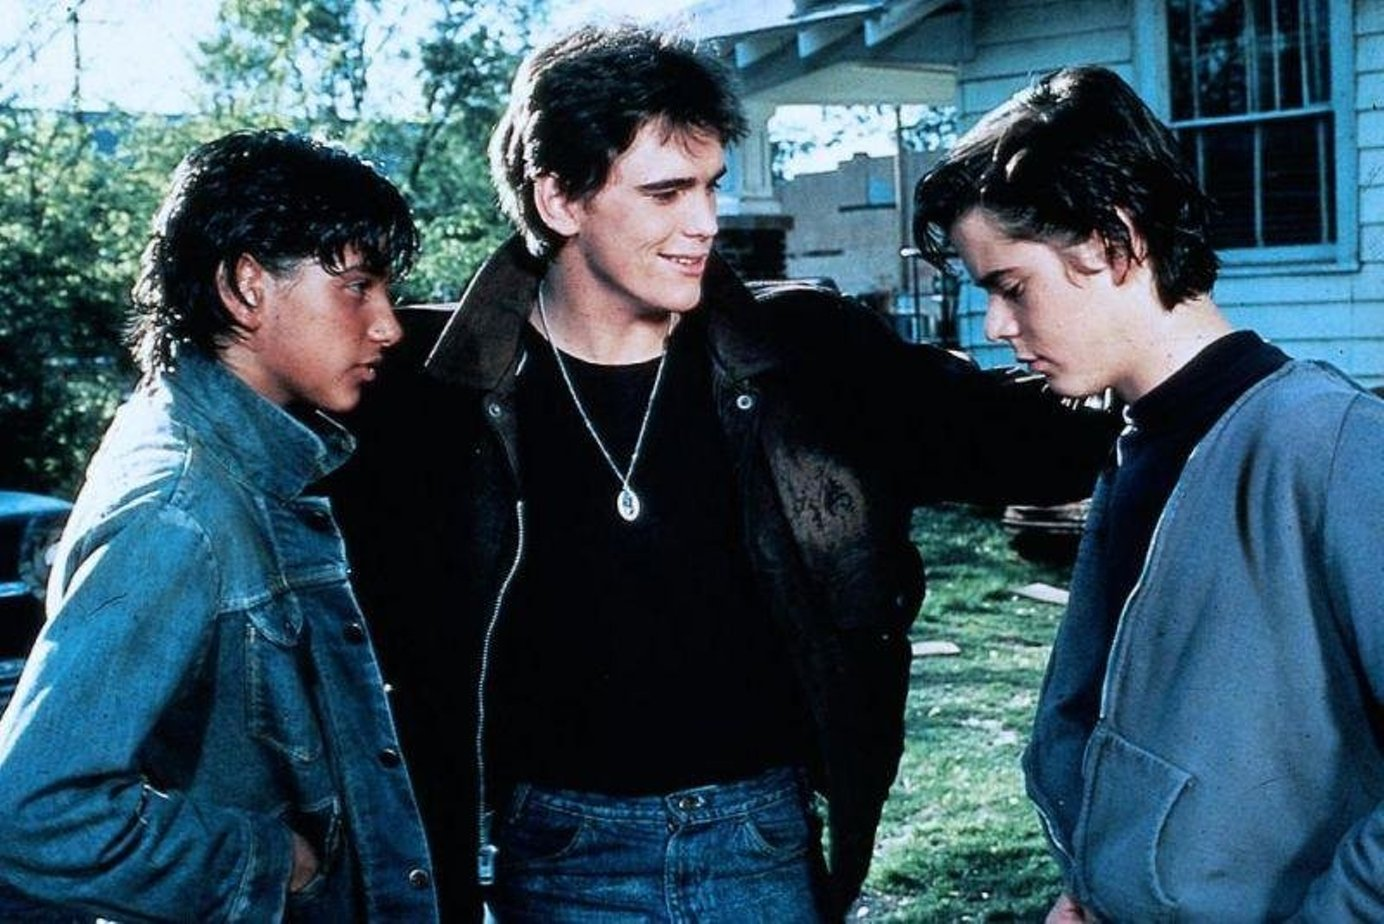 The outsiders dally pictures Which Define Which at m